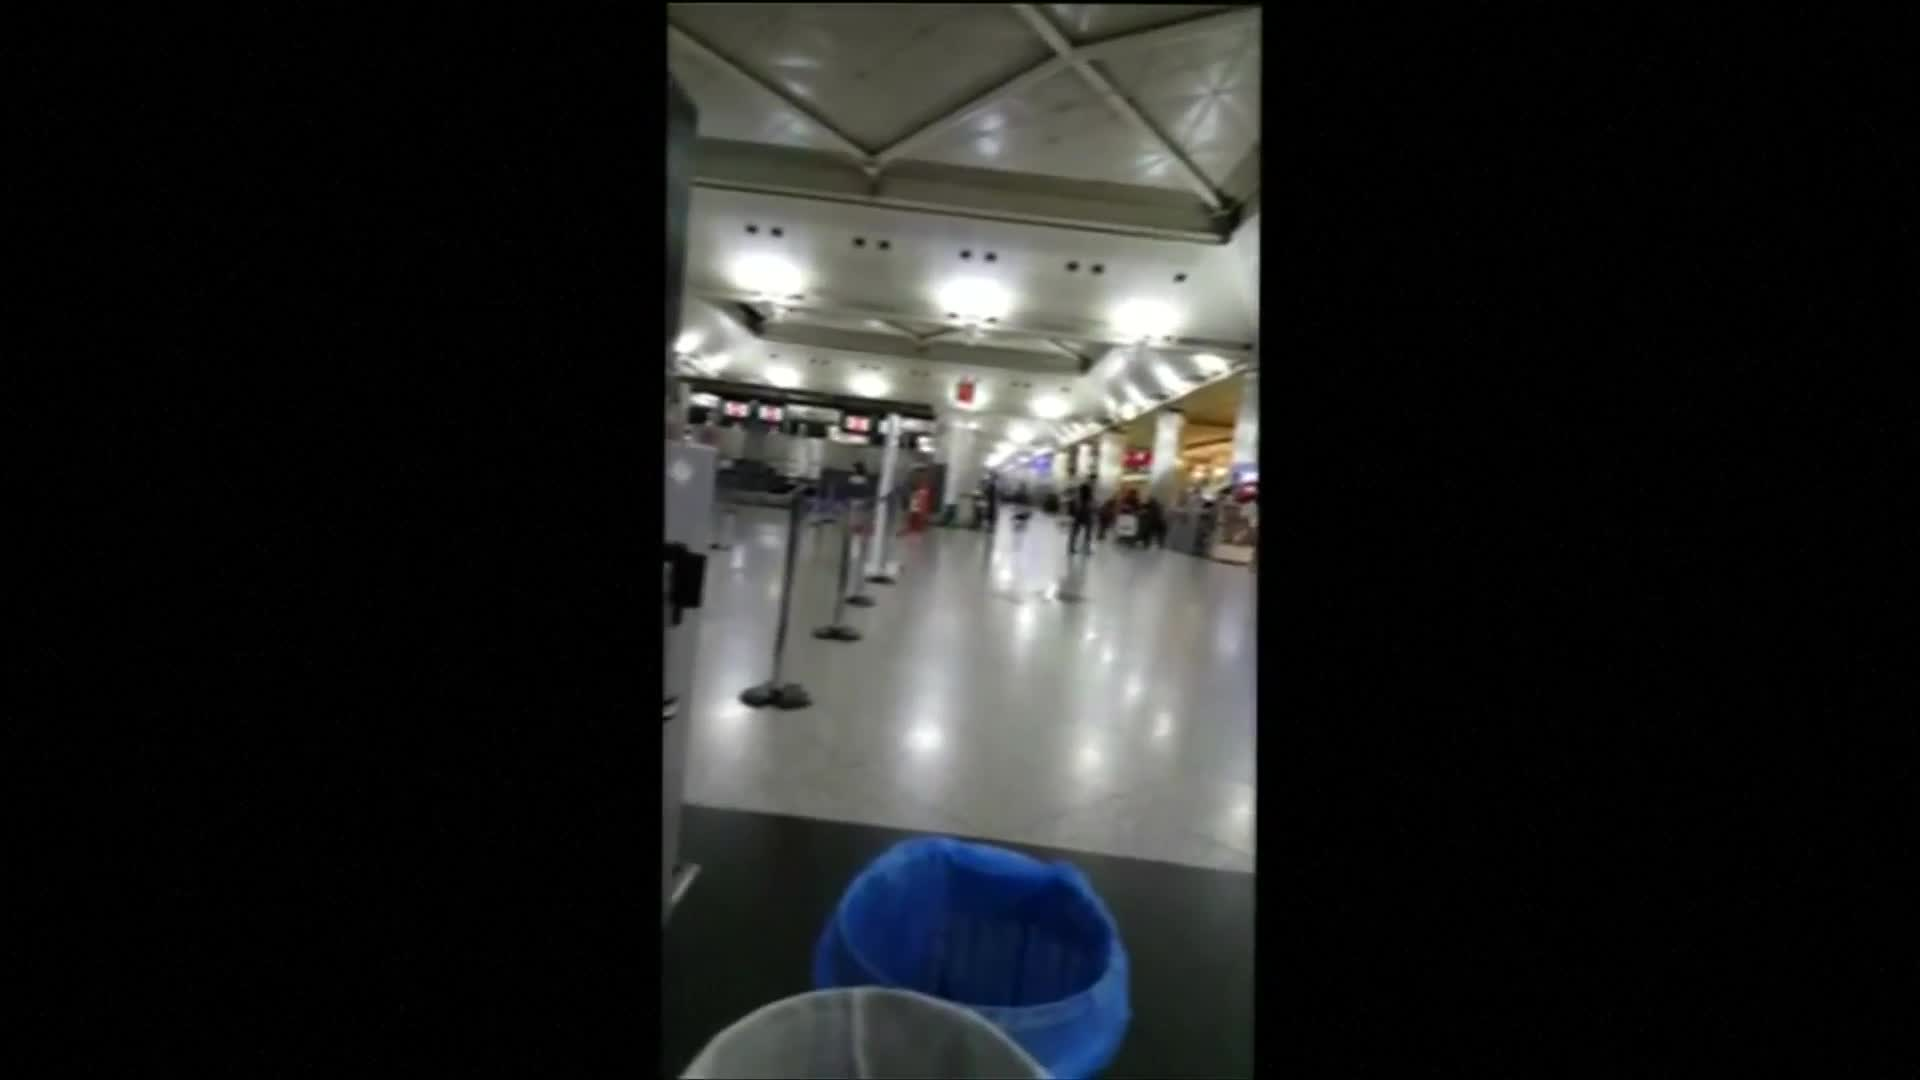 Amateur videos show Istanbul airport shortly after attack